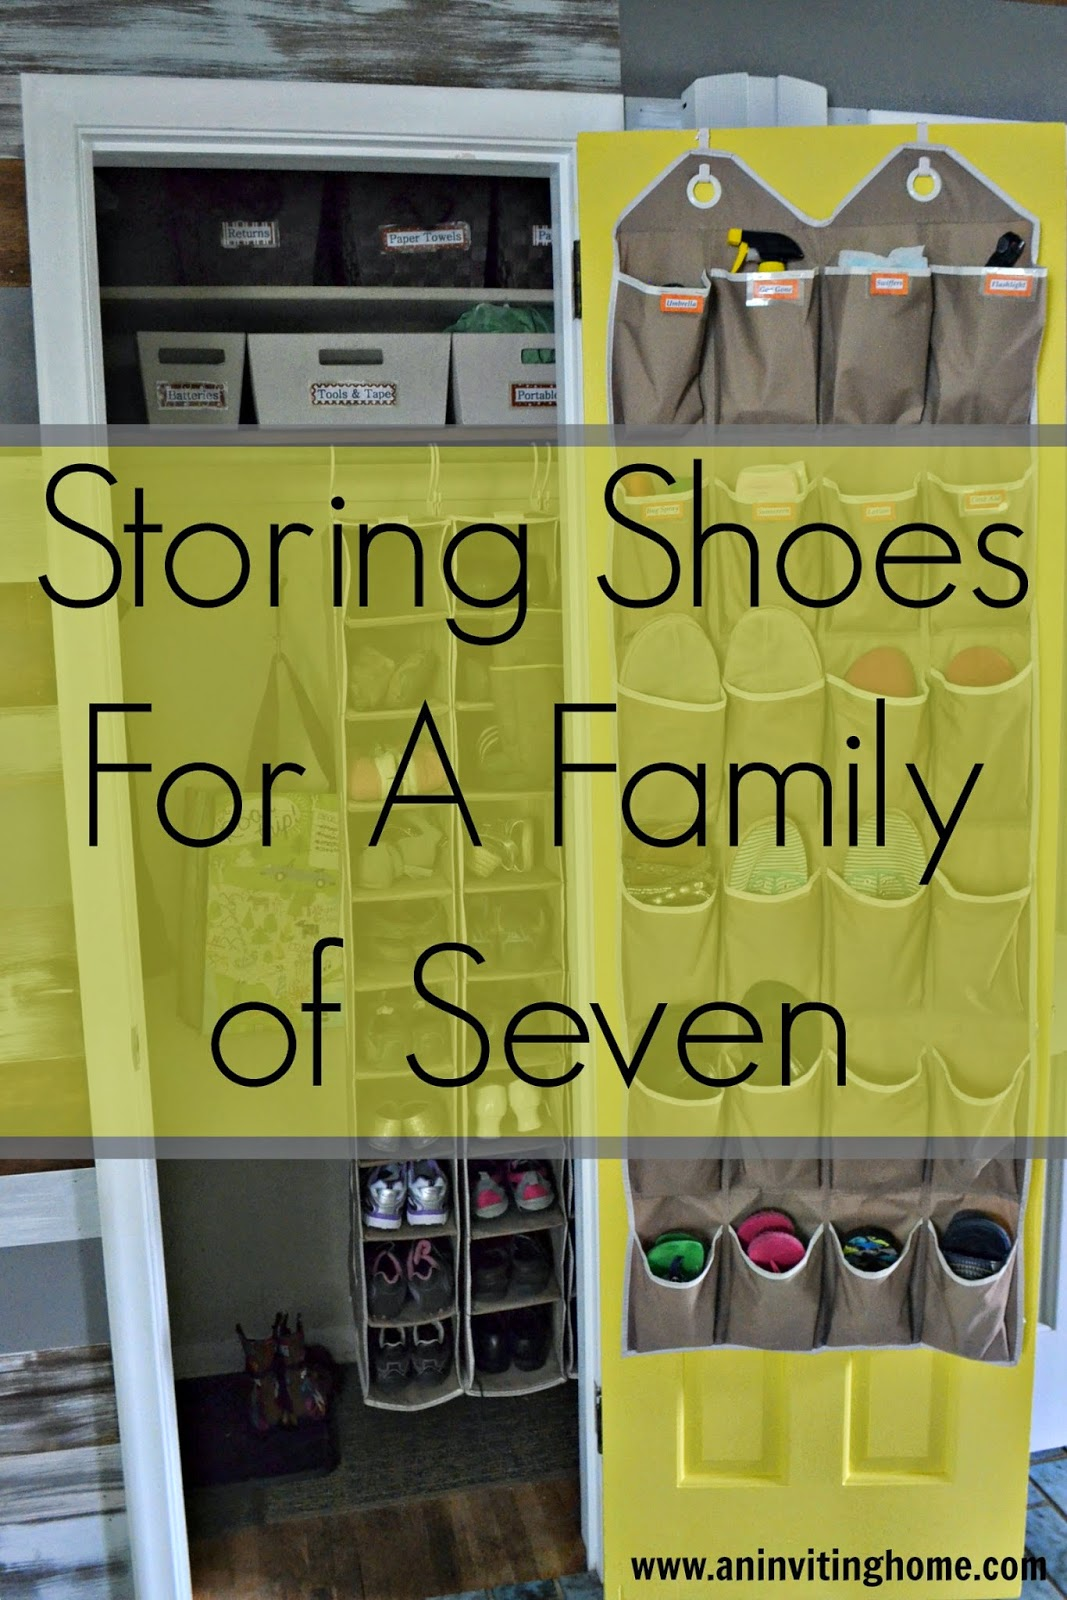 Storing Shoes For A Family of Seven